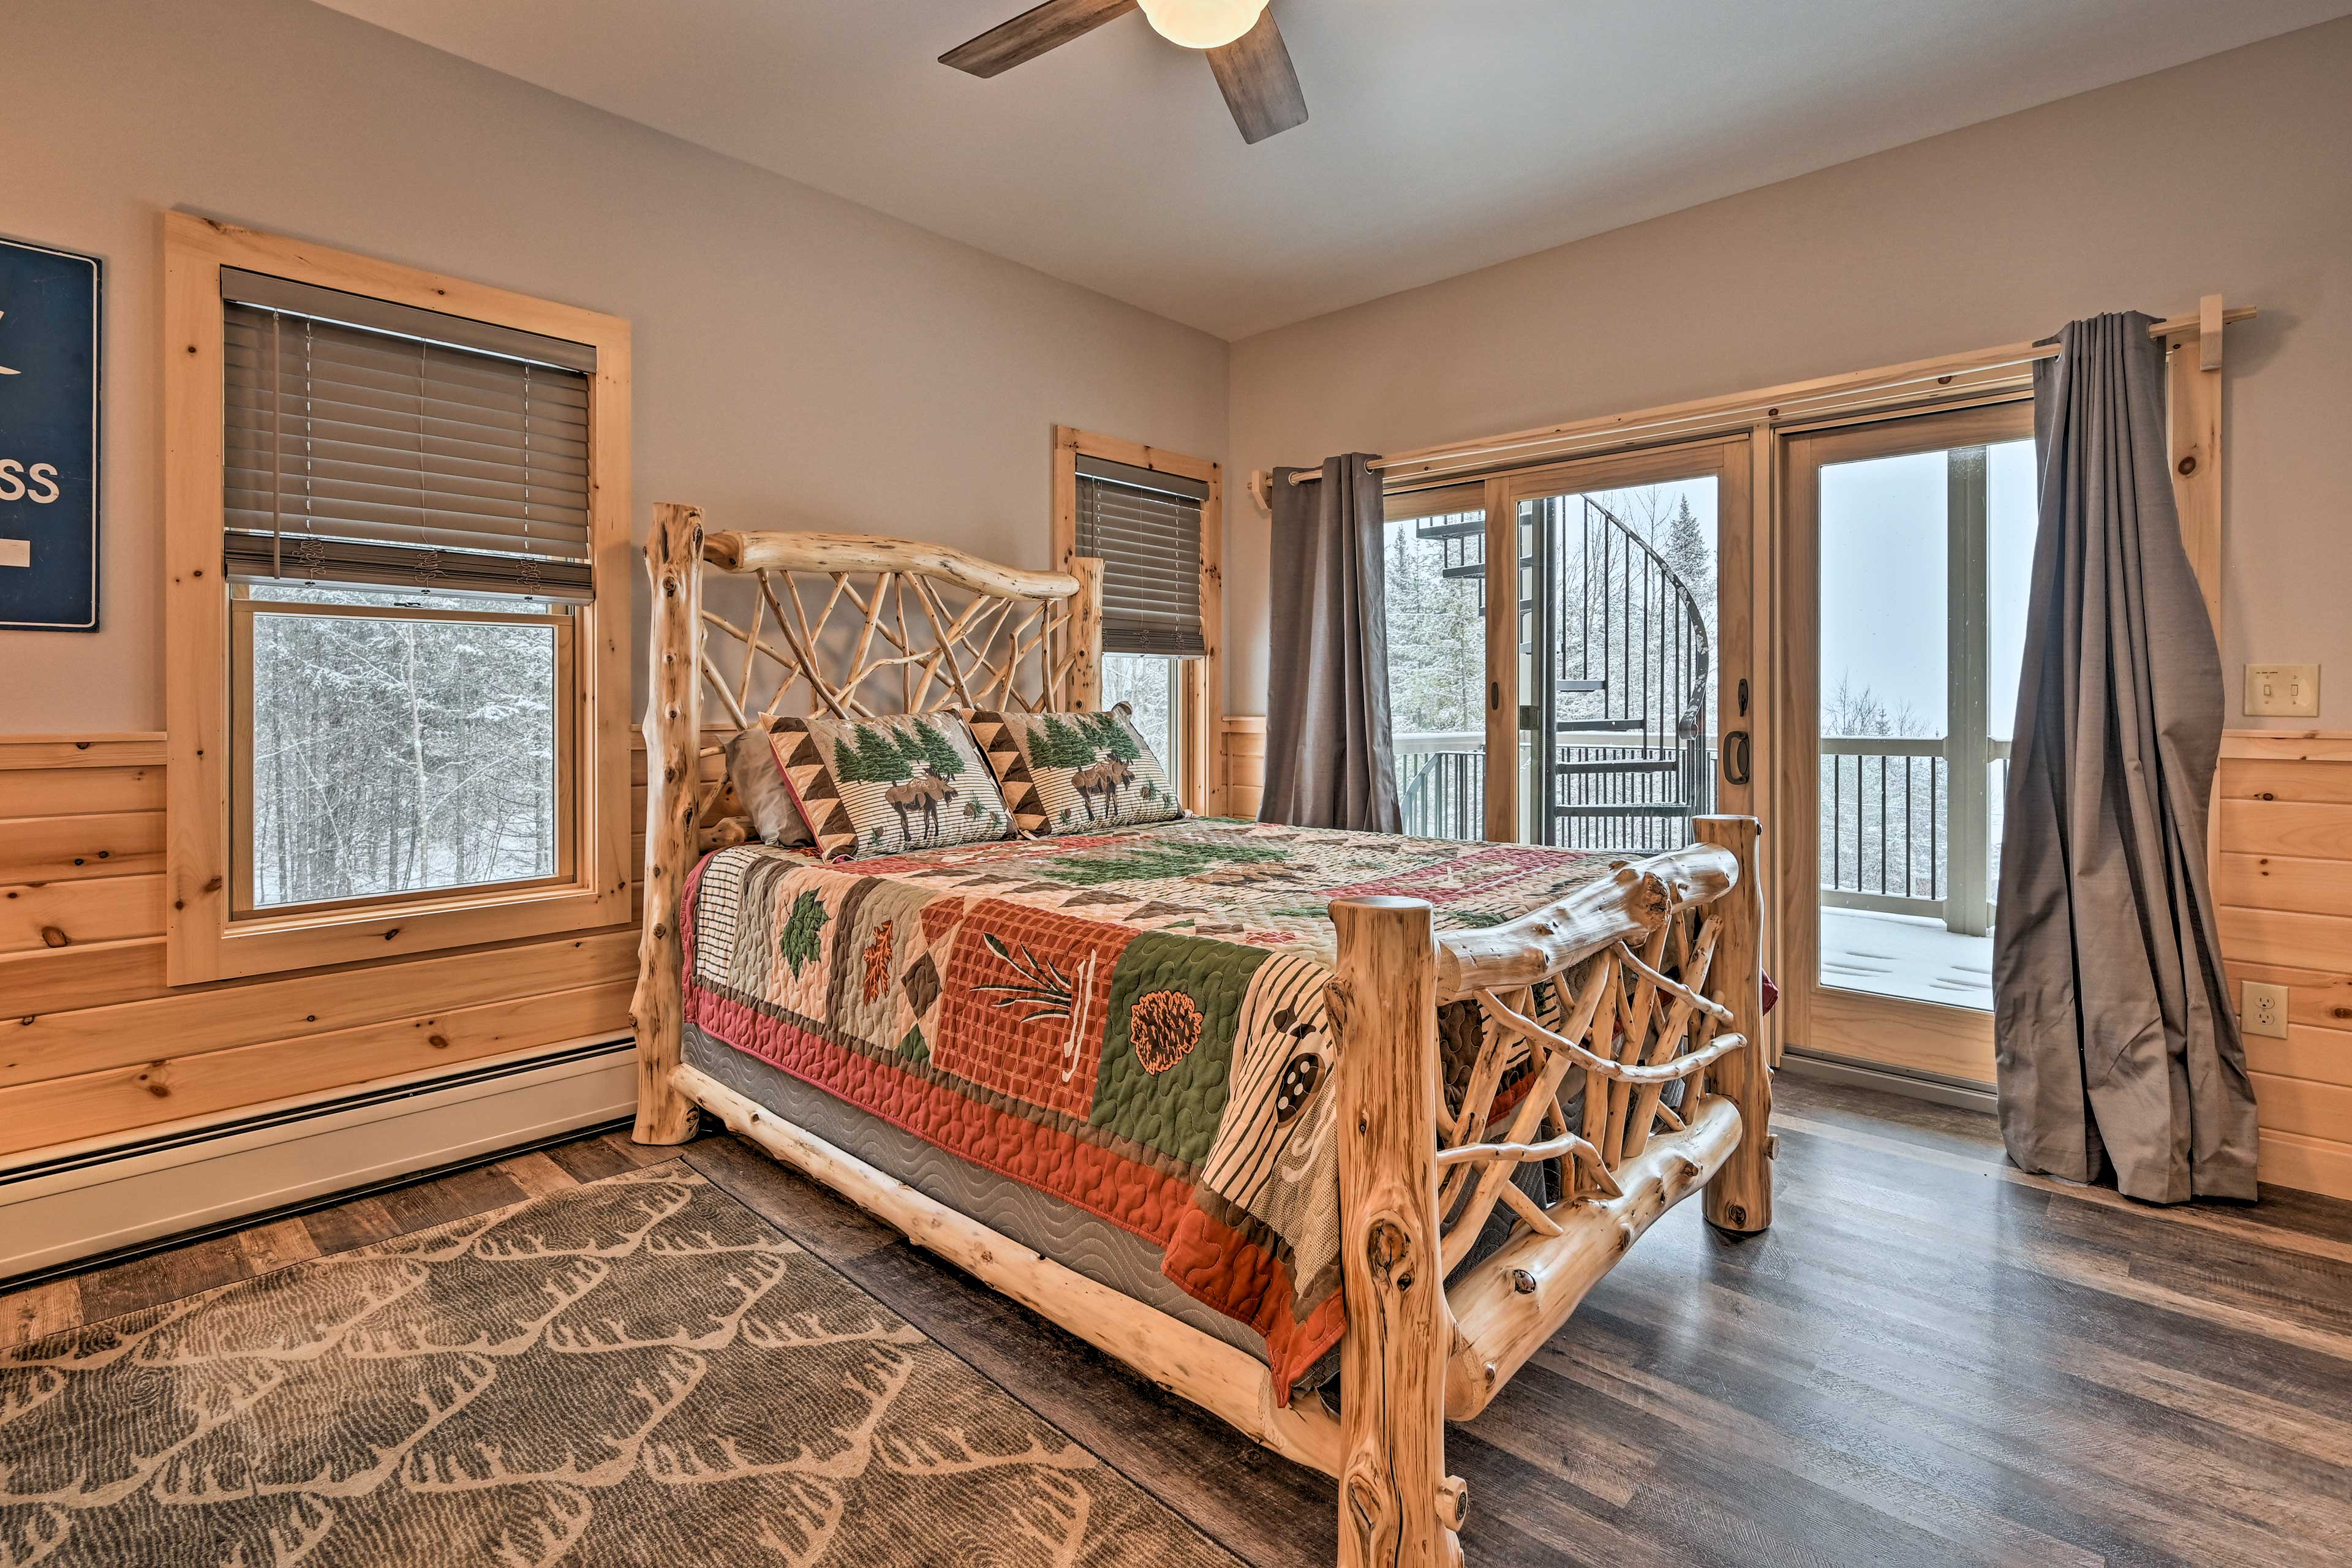 The master bedroom features a queen bed and balcony access.